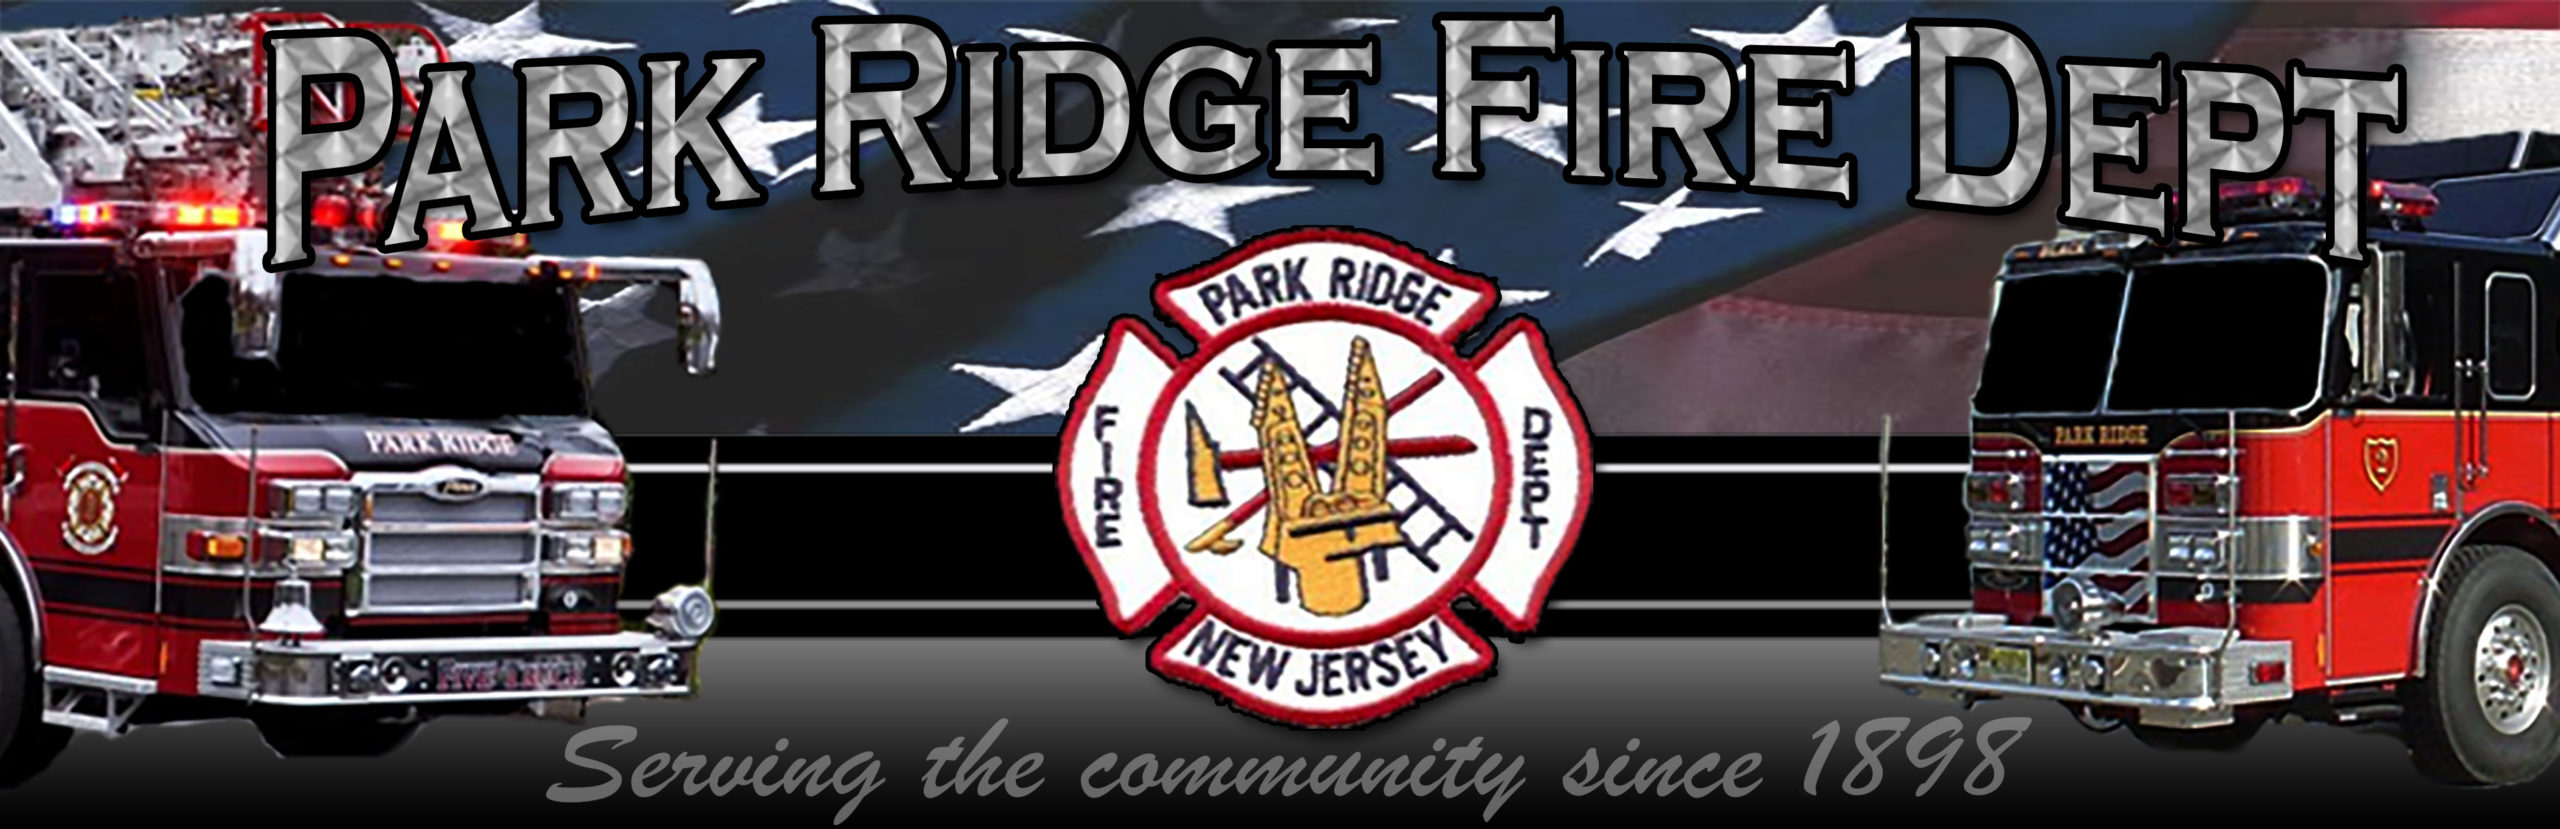 Park Ridge Fire Department